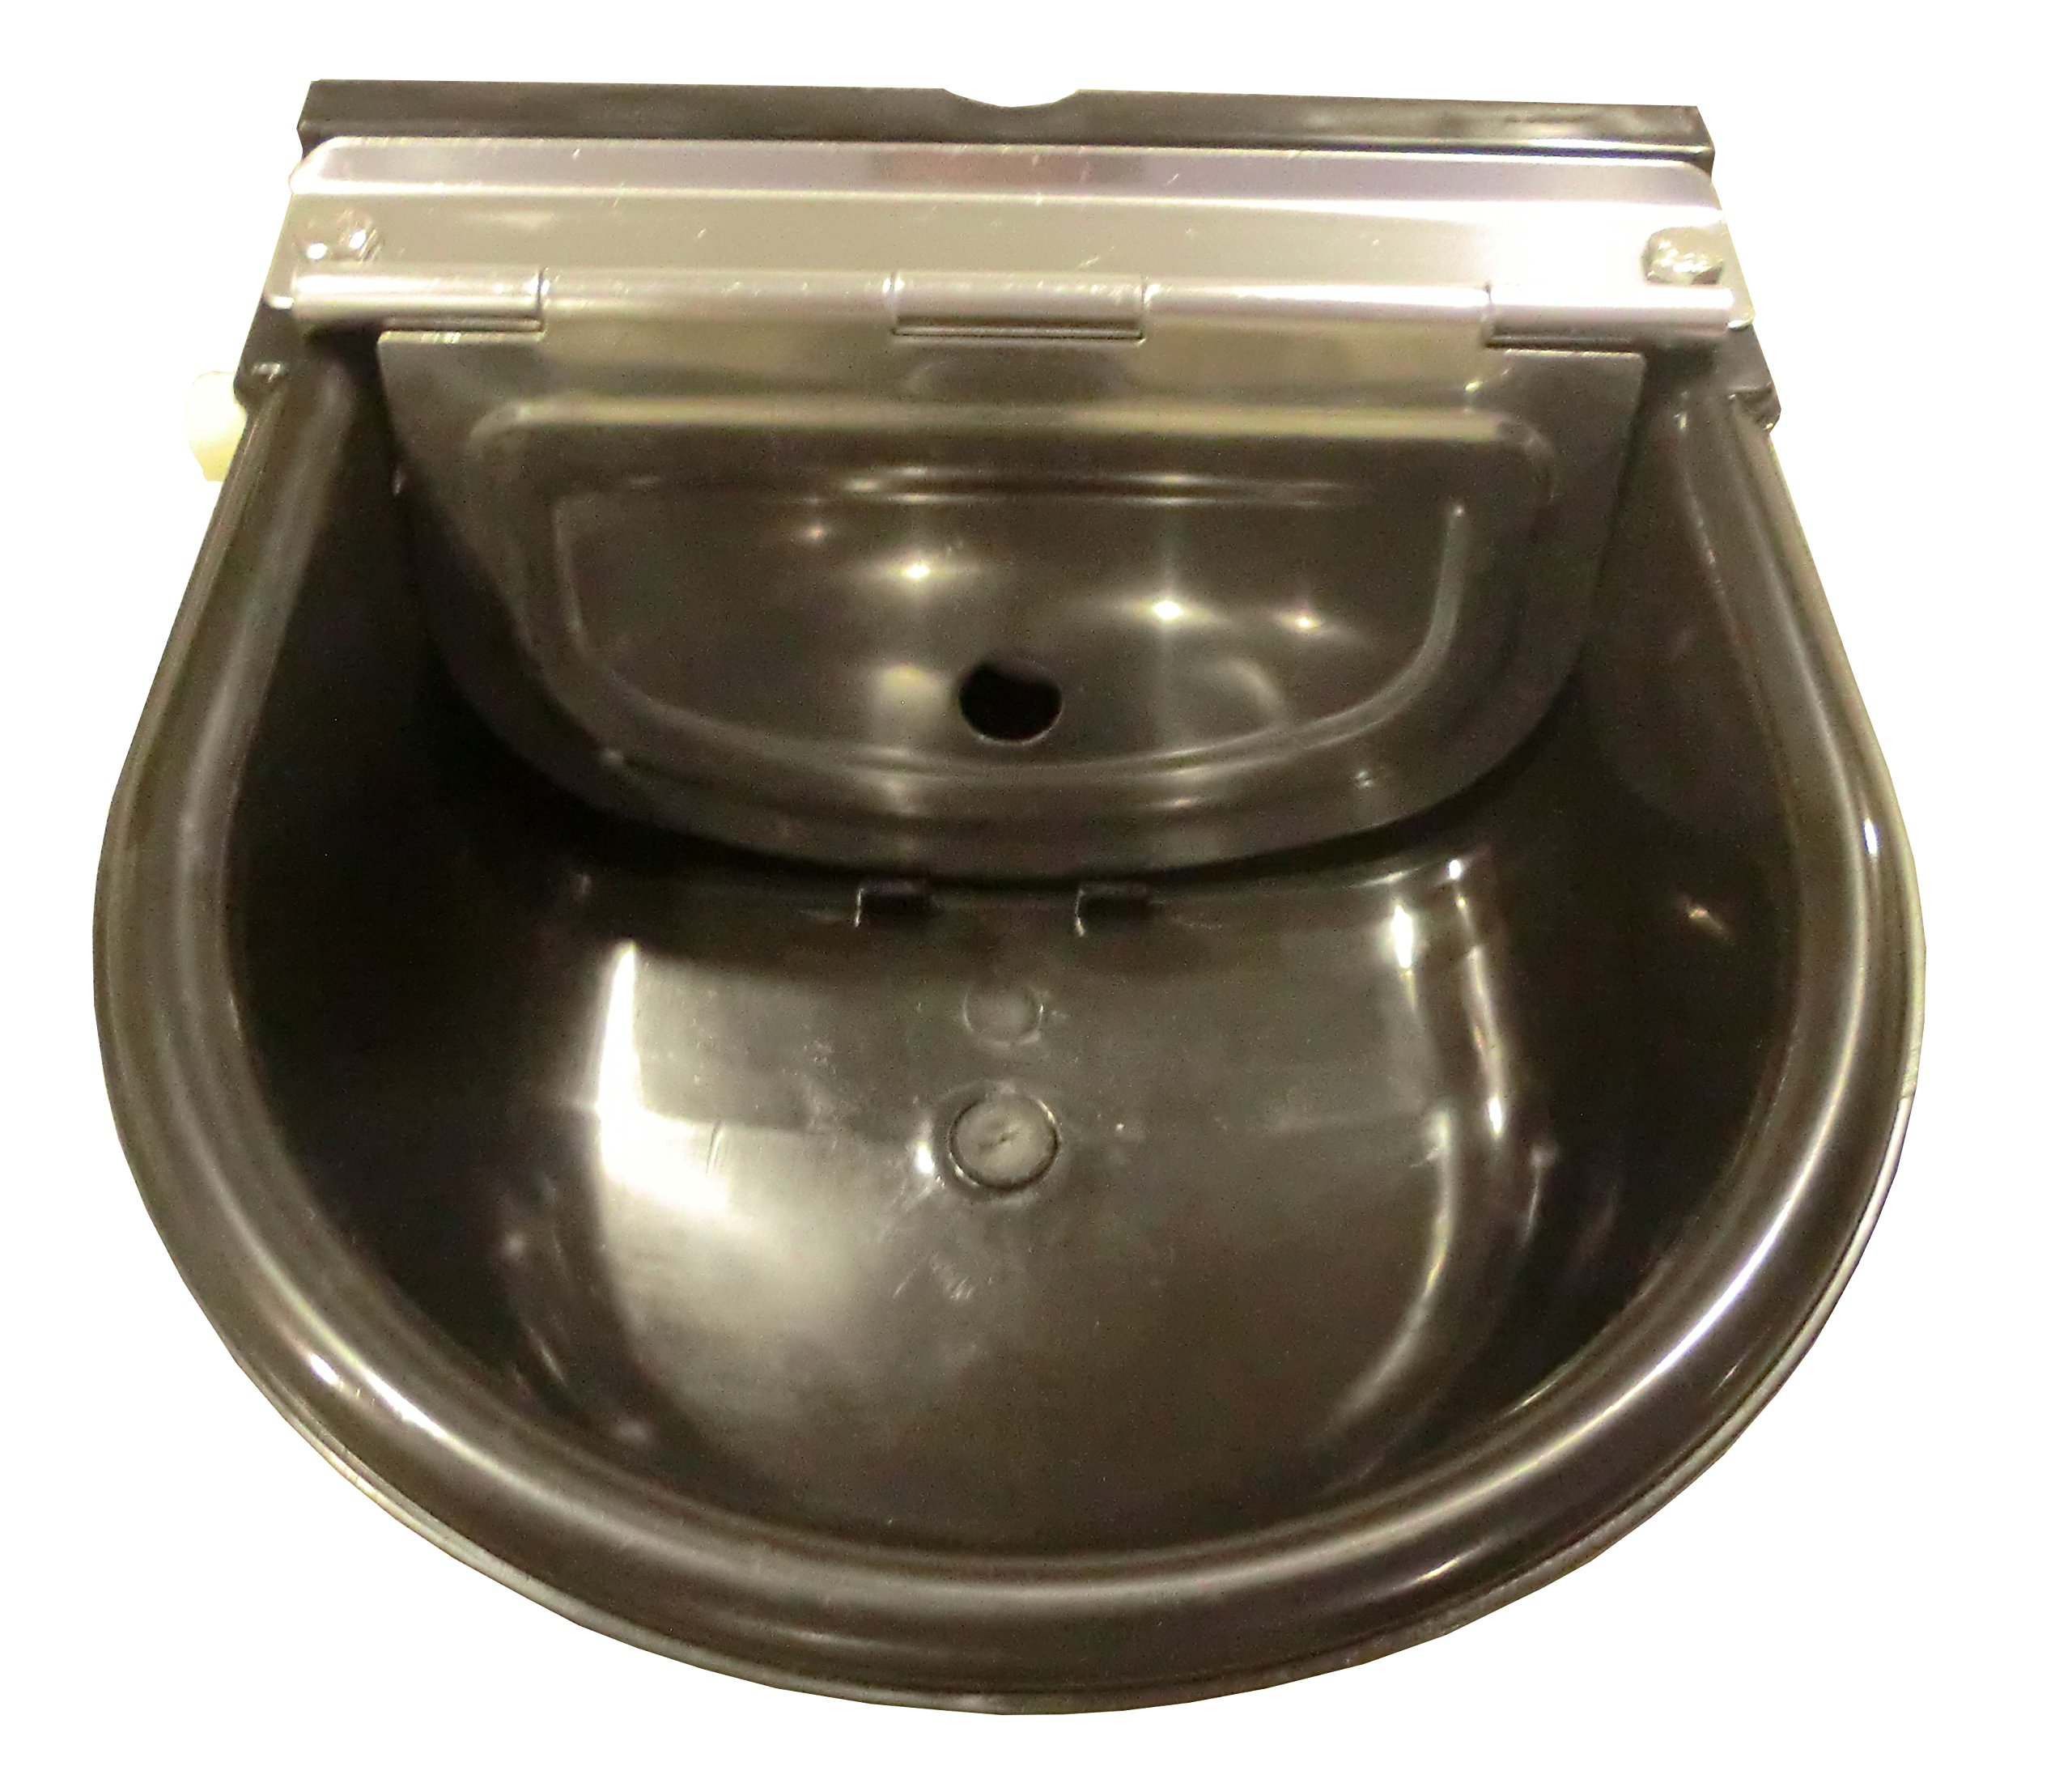 Large Black Automatic Stock Waterer By Rabbitnipples.com by rabbitnipples.com